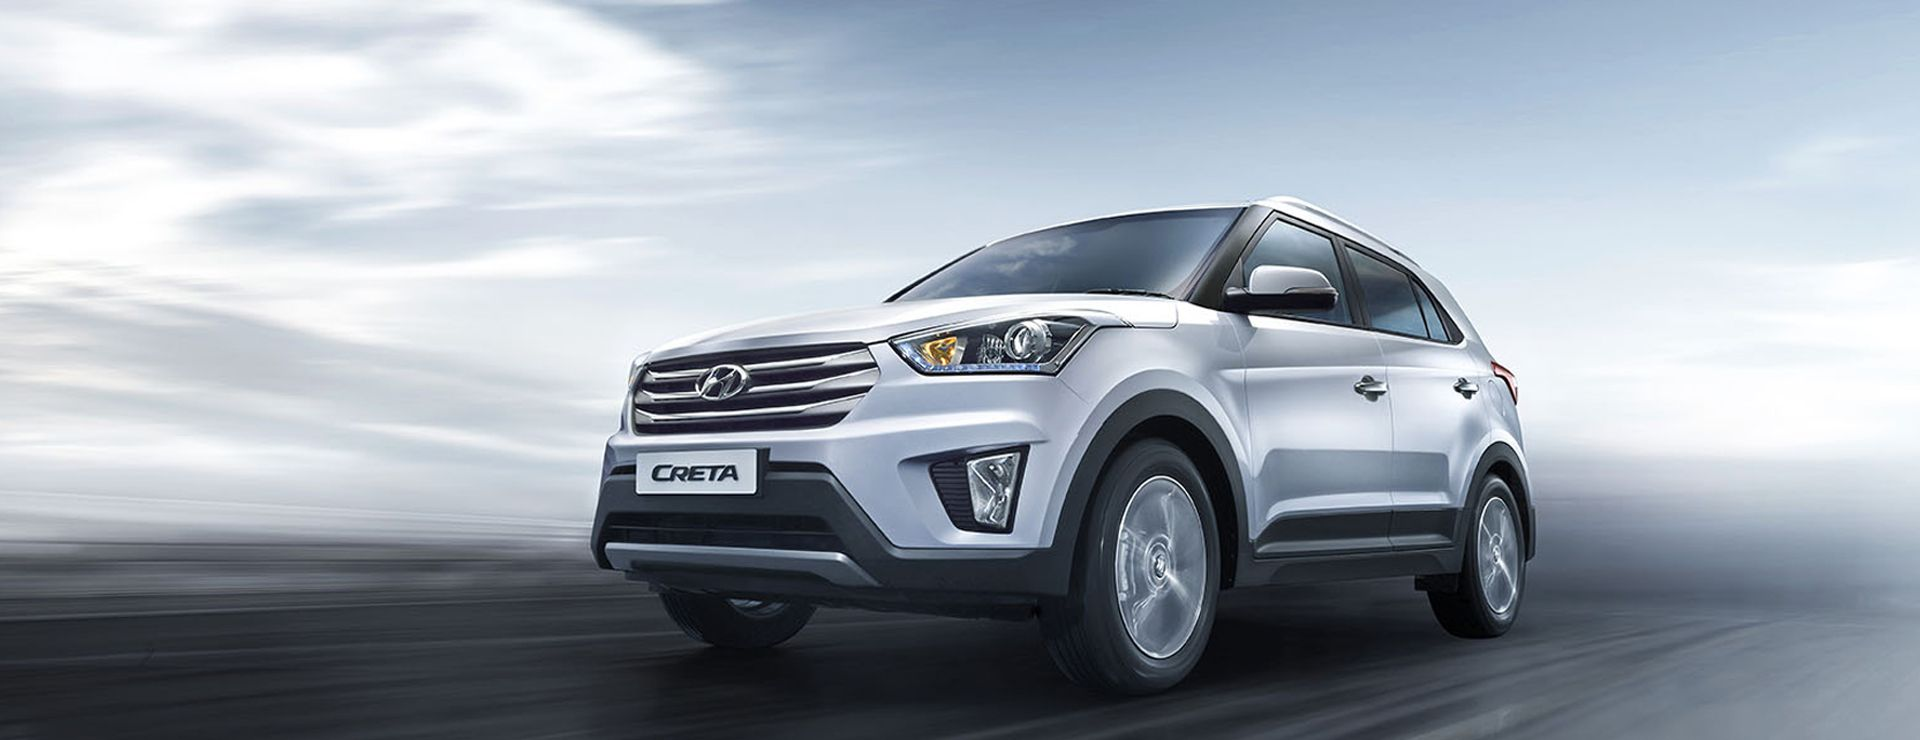 Hyundai_CRETA to be offered with starting price of Rs. 9